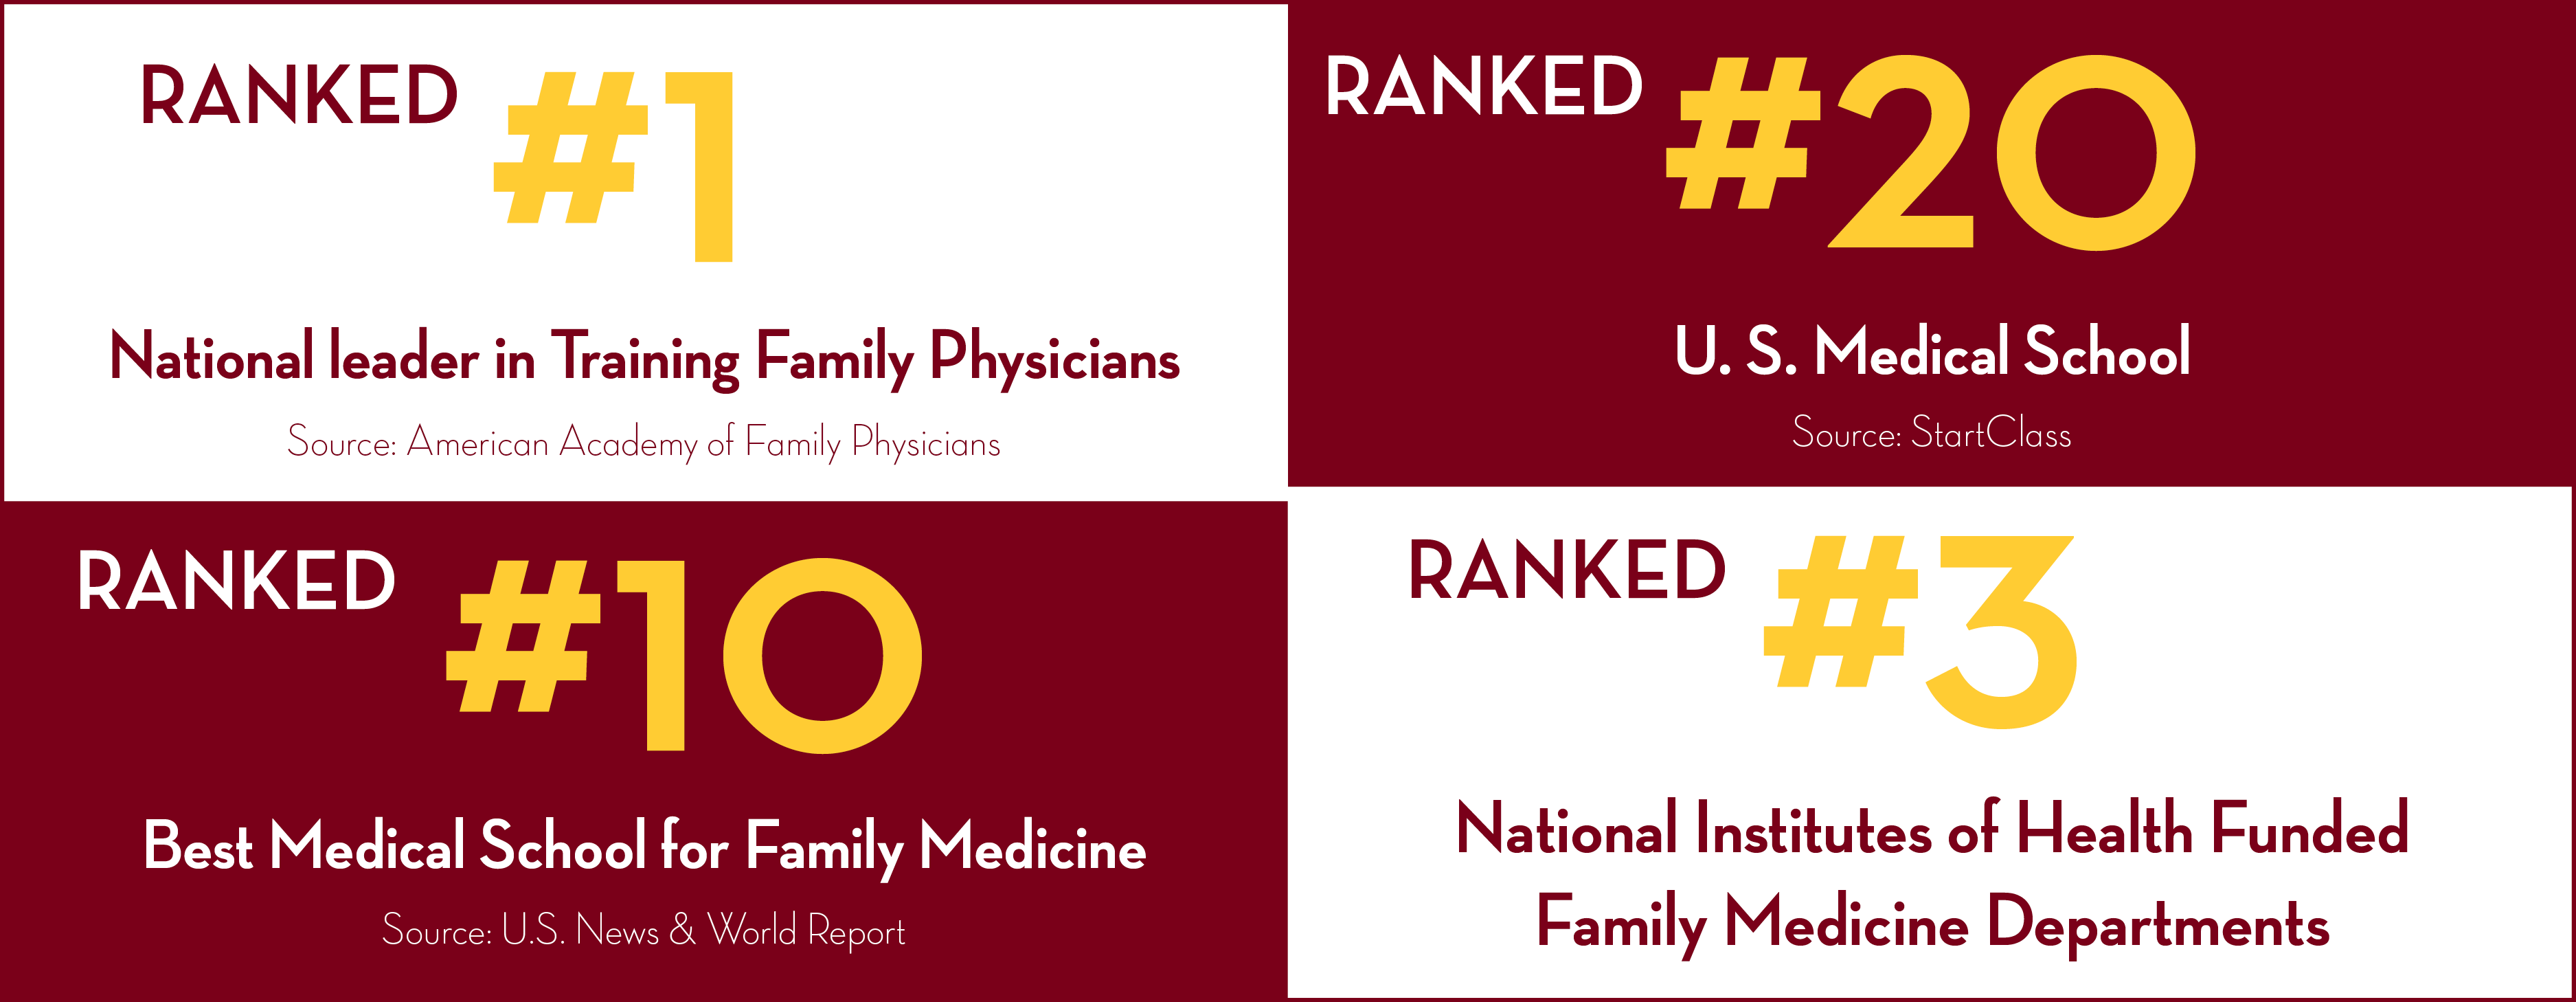 Ranked #1 in Training Family Physicians, Ranked #20 U.S. Med School by StartClass, Ranked #10 Best Med School for Family Medicine, and Ranked #3 NIH funded Family Med Departments